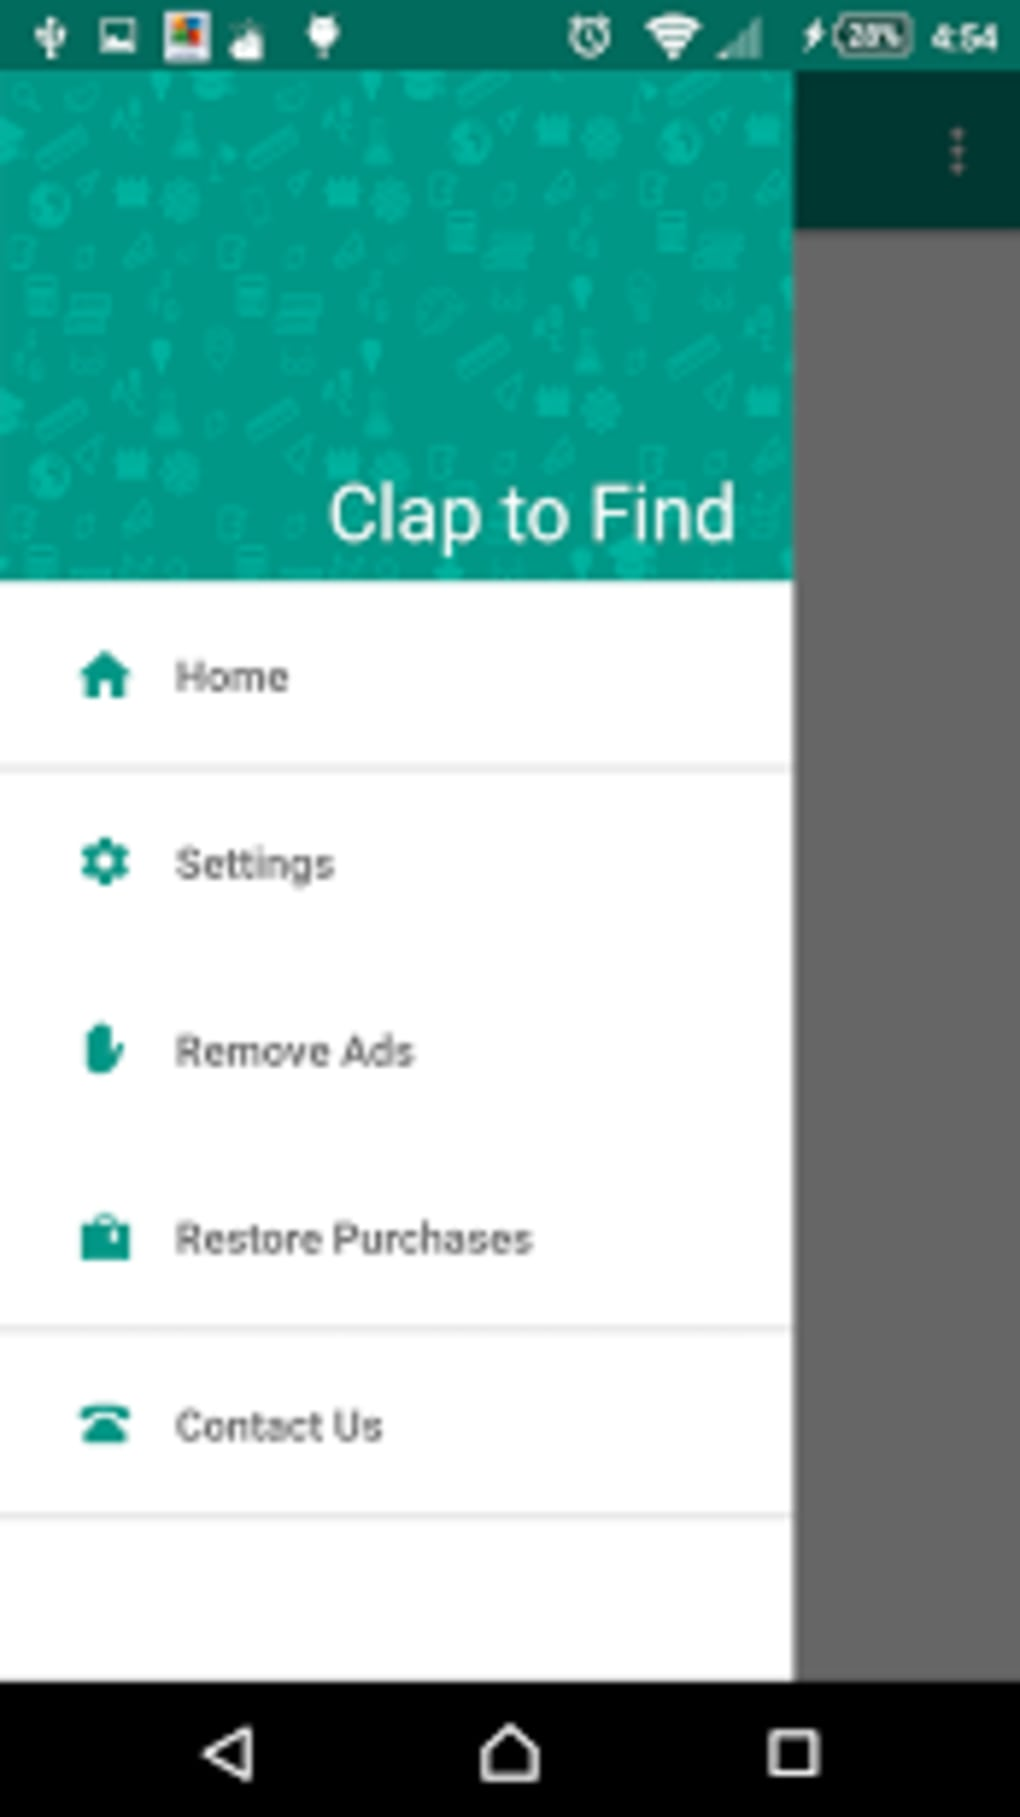 clap to find for android download